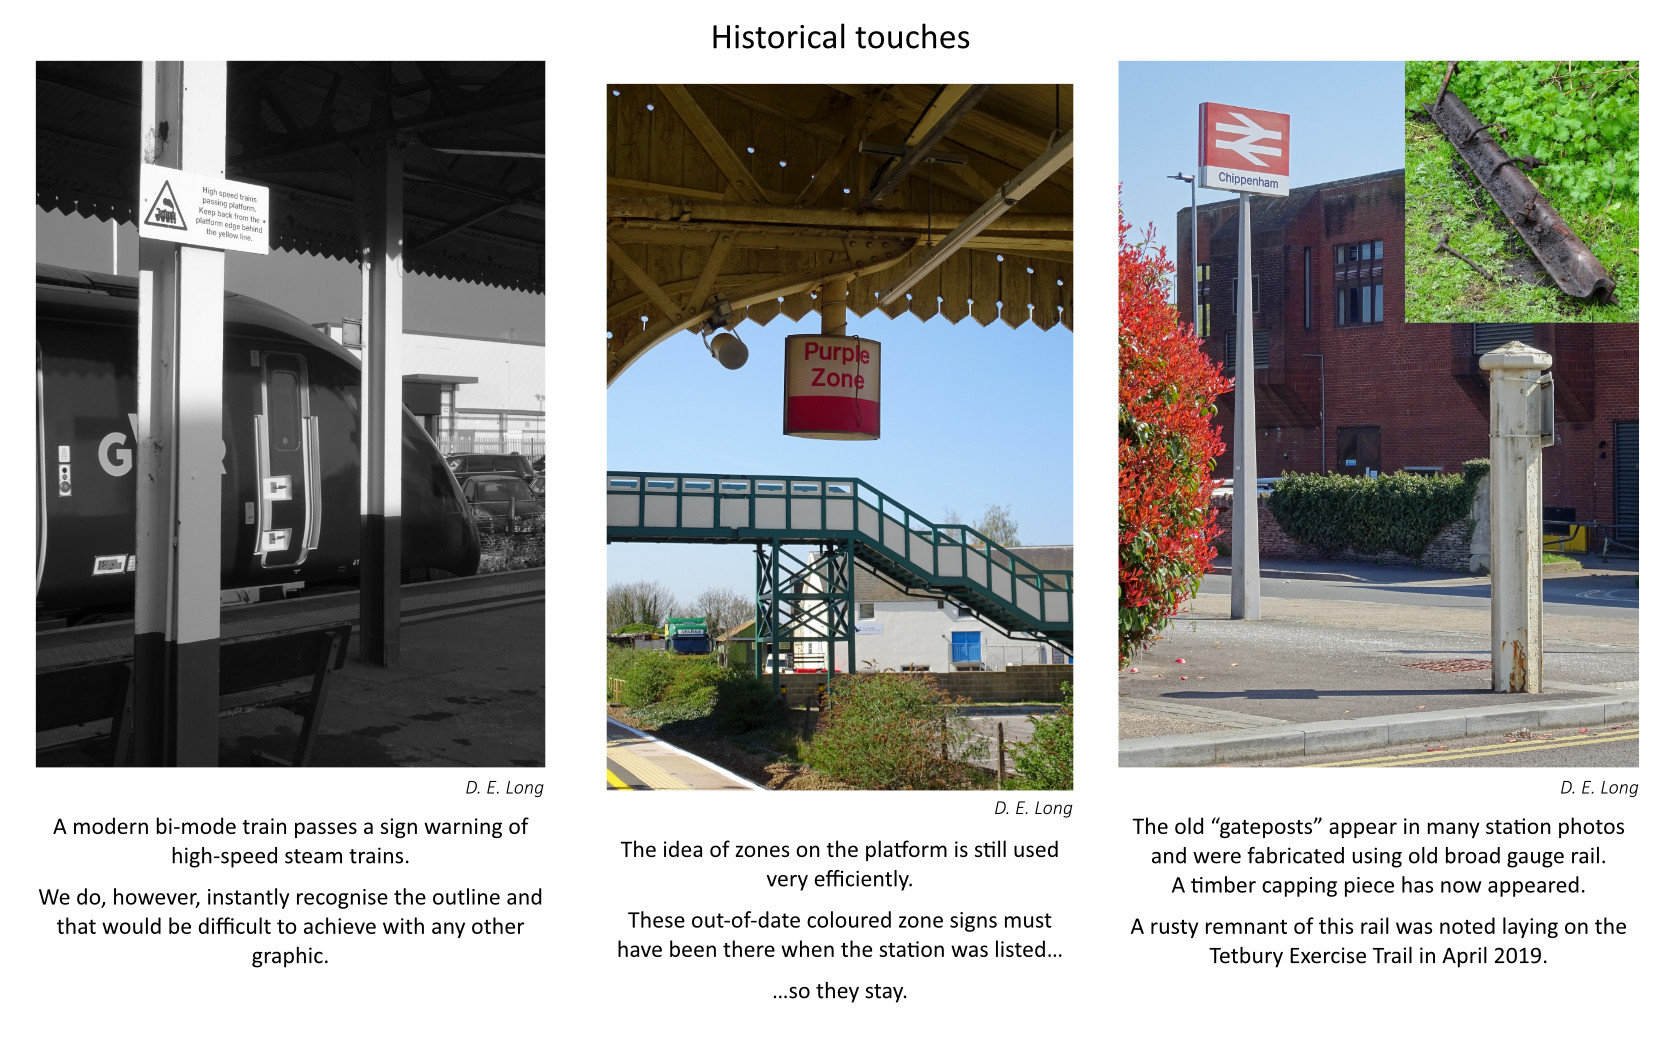 three photographs of different sections of the station. Caption one, A modern bi-mode train passes a sign warning of high-speed steam trains. We do however constantly recognise the outline and that would be difficult to achieve with any other graphic. Caption two, The idea of zones on the platform is still used very efficiently. These out of date coloured zone signs must have been there when the station was listed... so they stay. Caption three, The old 'gateposts' appear in many station photos and were fabricated using old broad gauge rail. A timber piece has now appeared. A rusty remnant of this rail was noted laying on the Tetbury exercise trail in 2019.